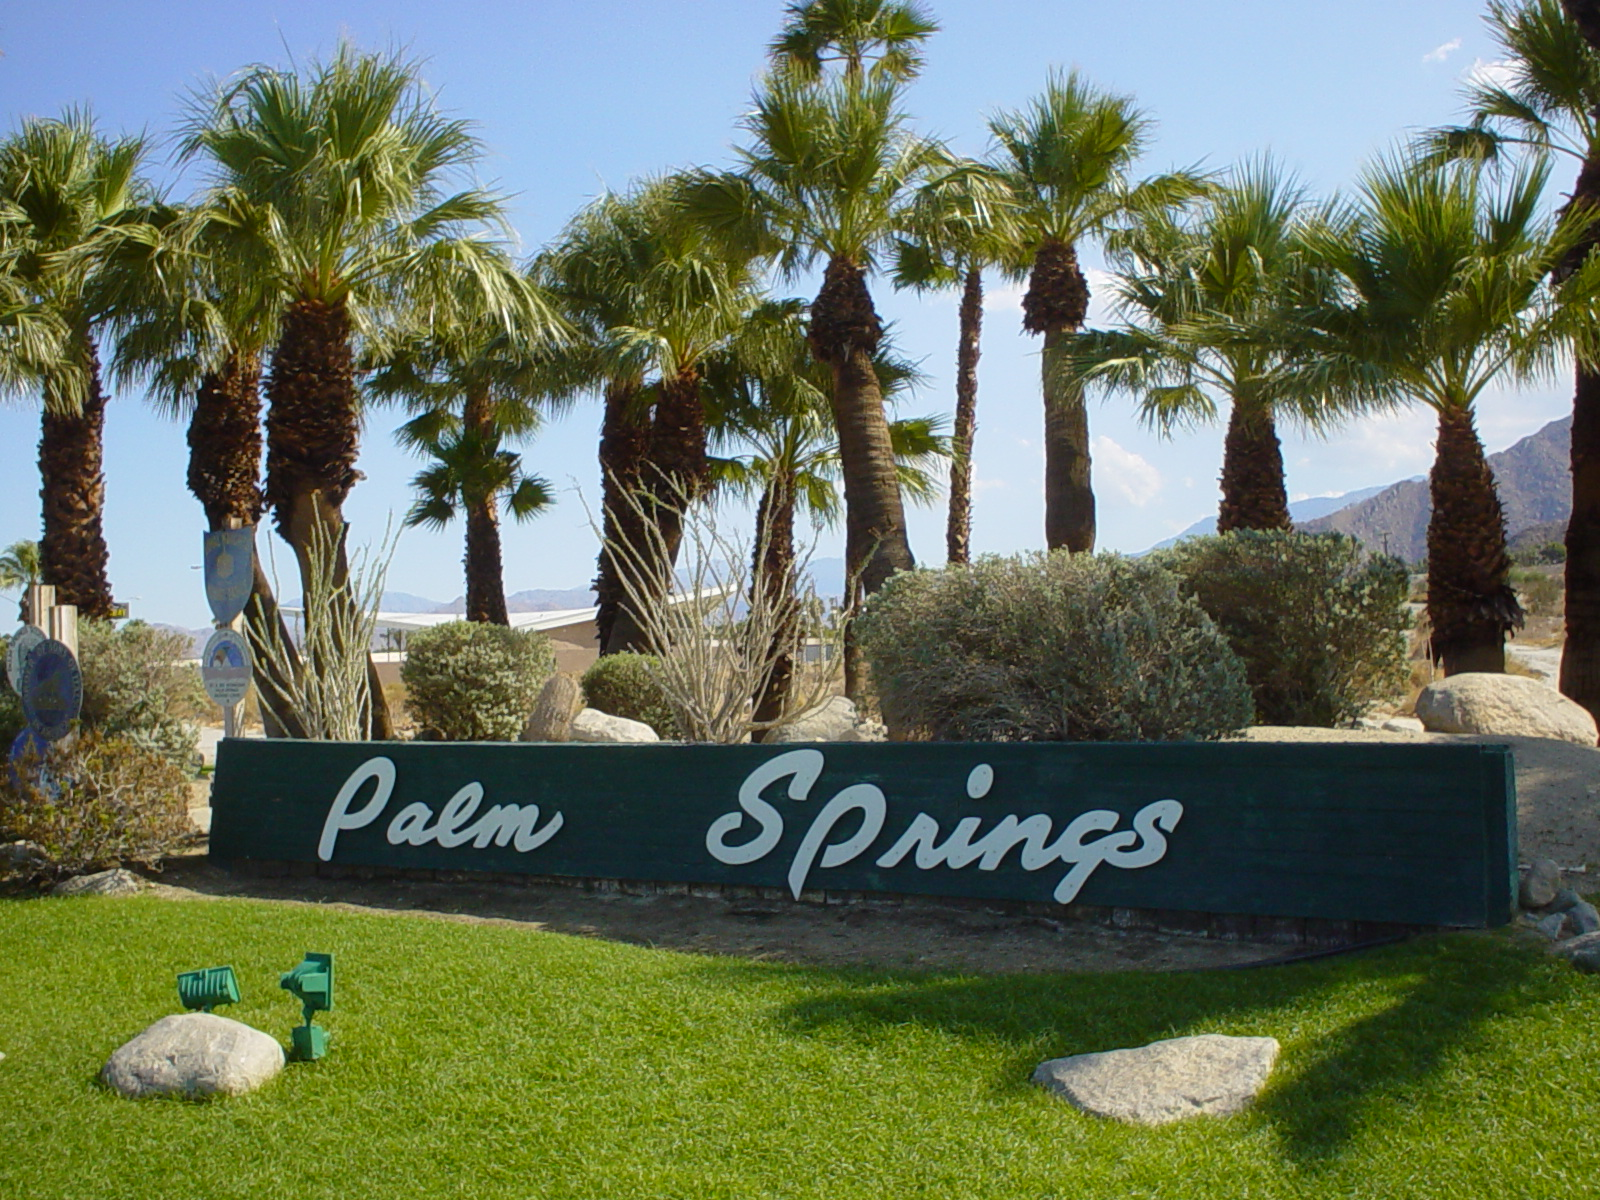 Travel fixx palm springs bodyfixx total wellness for Travel to palm springs